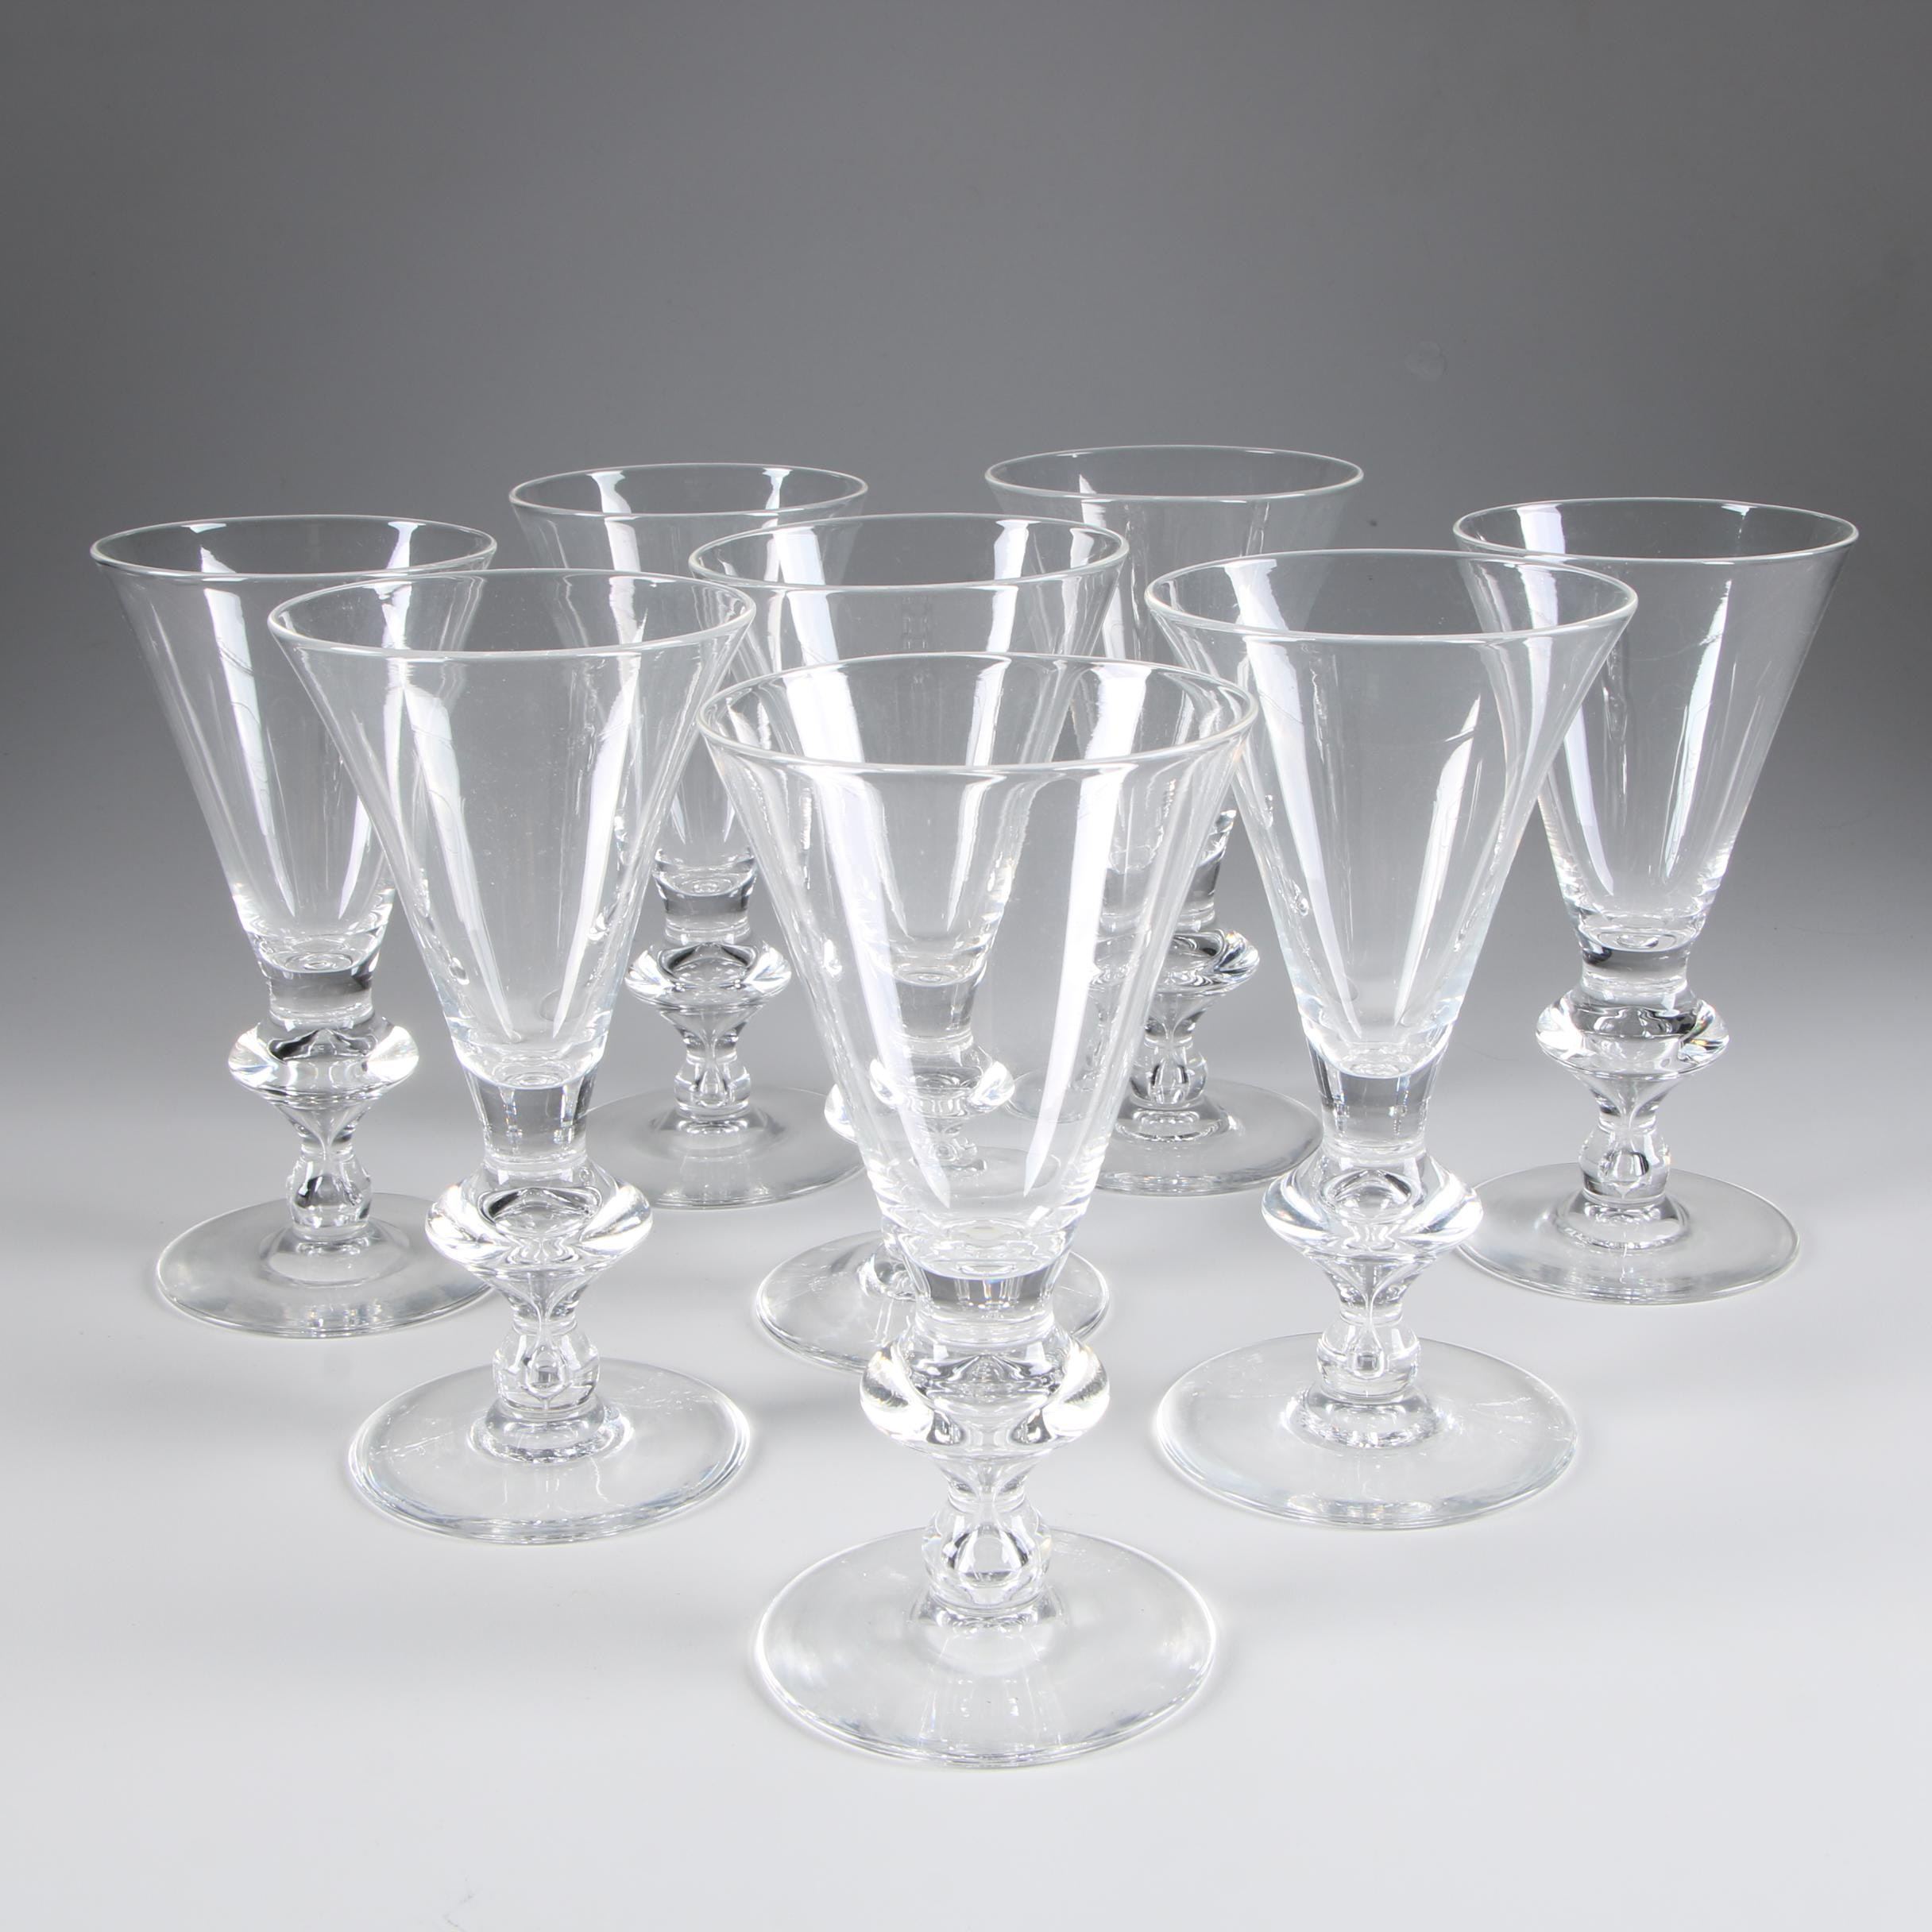 Steuben Art Glass Water Goblets Designed by Sidney Waugh, Circa 1930s